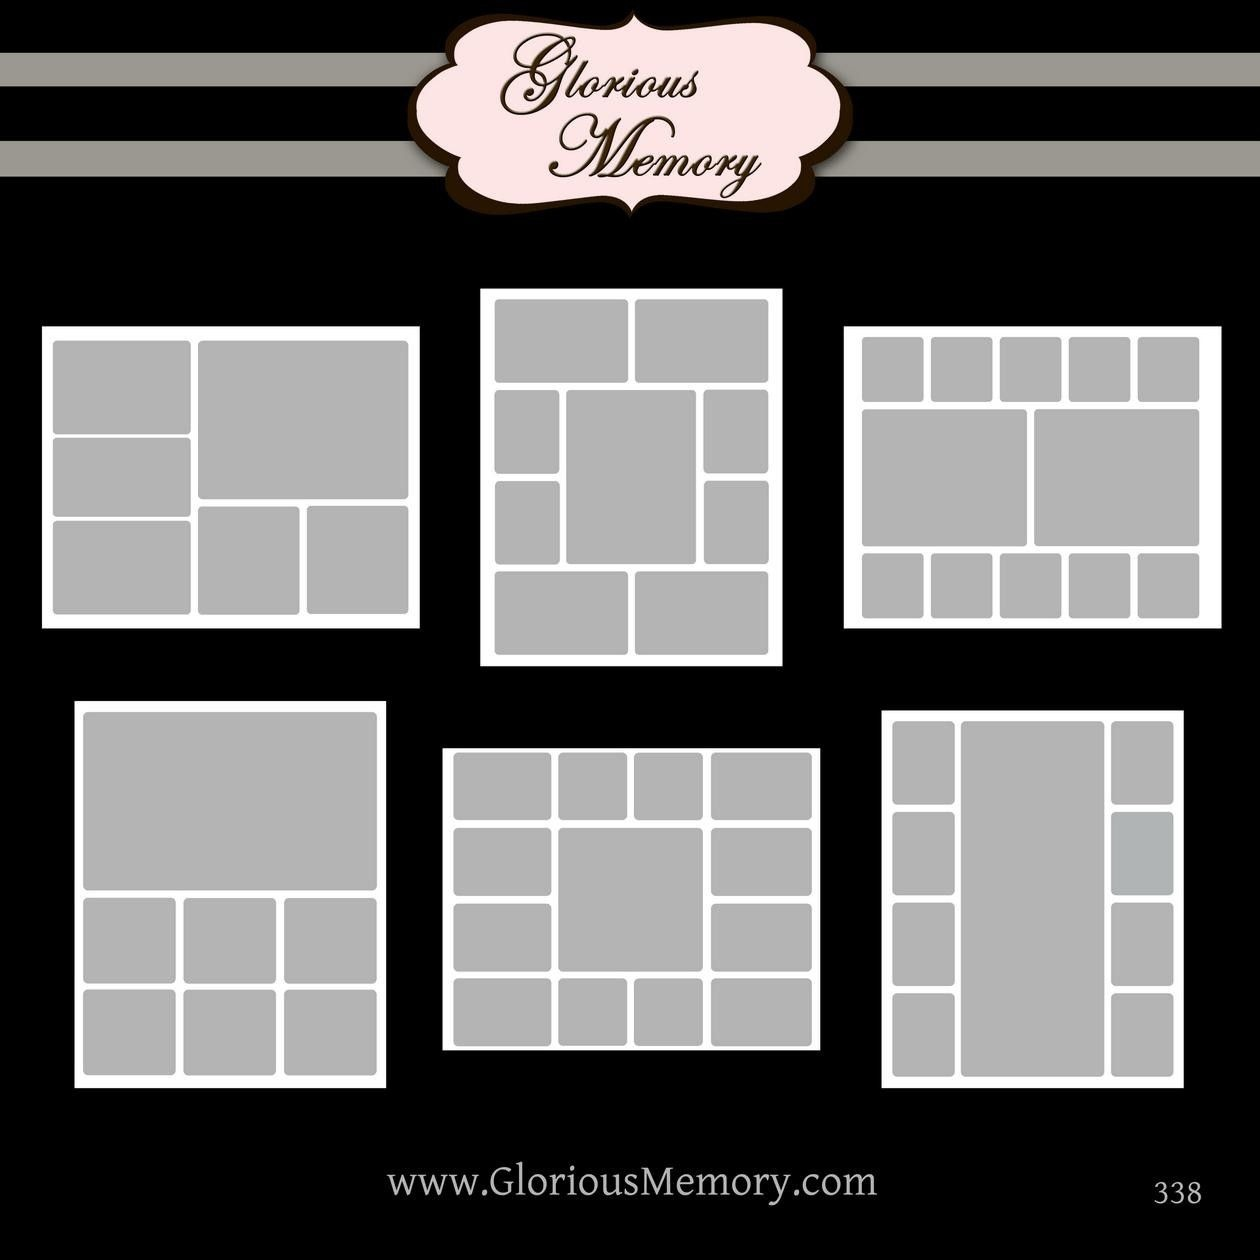 Storyboard Collage Blog Board Photoshop Psd Templates Three 16X20 - Free Printable Photo Collage Template